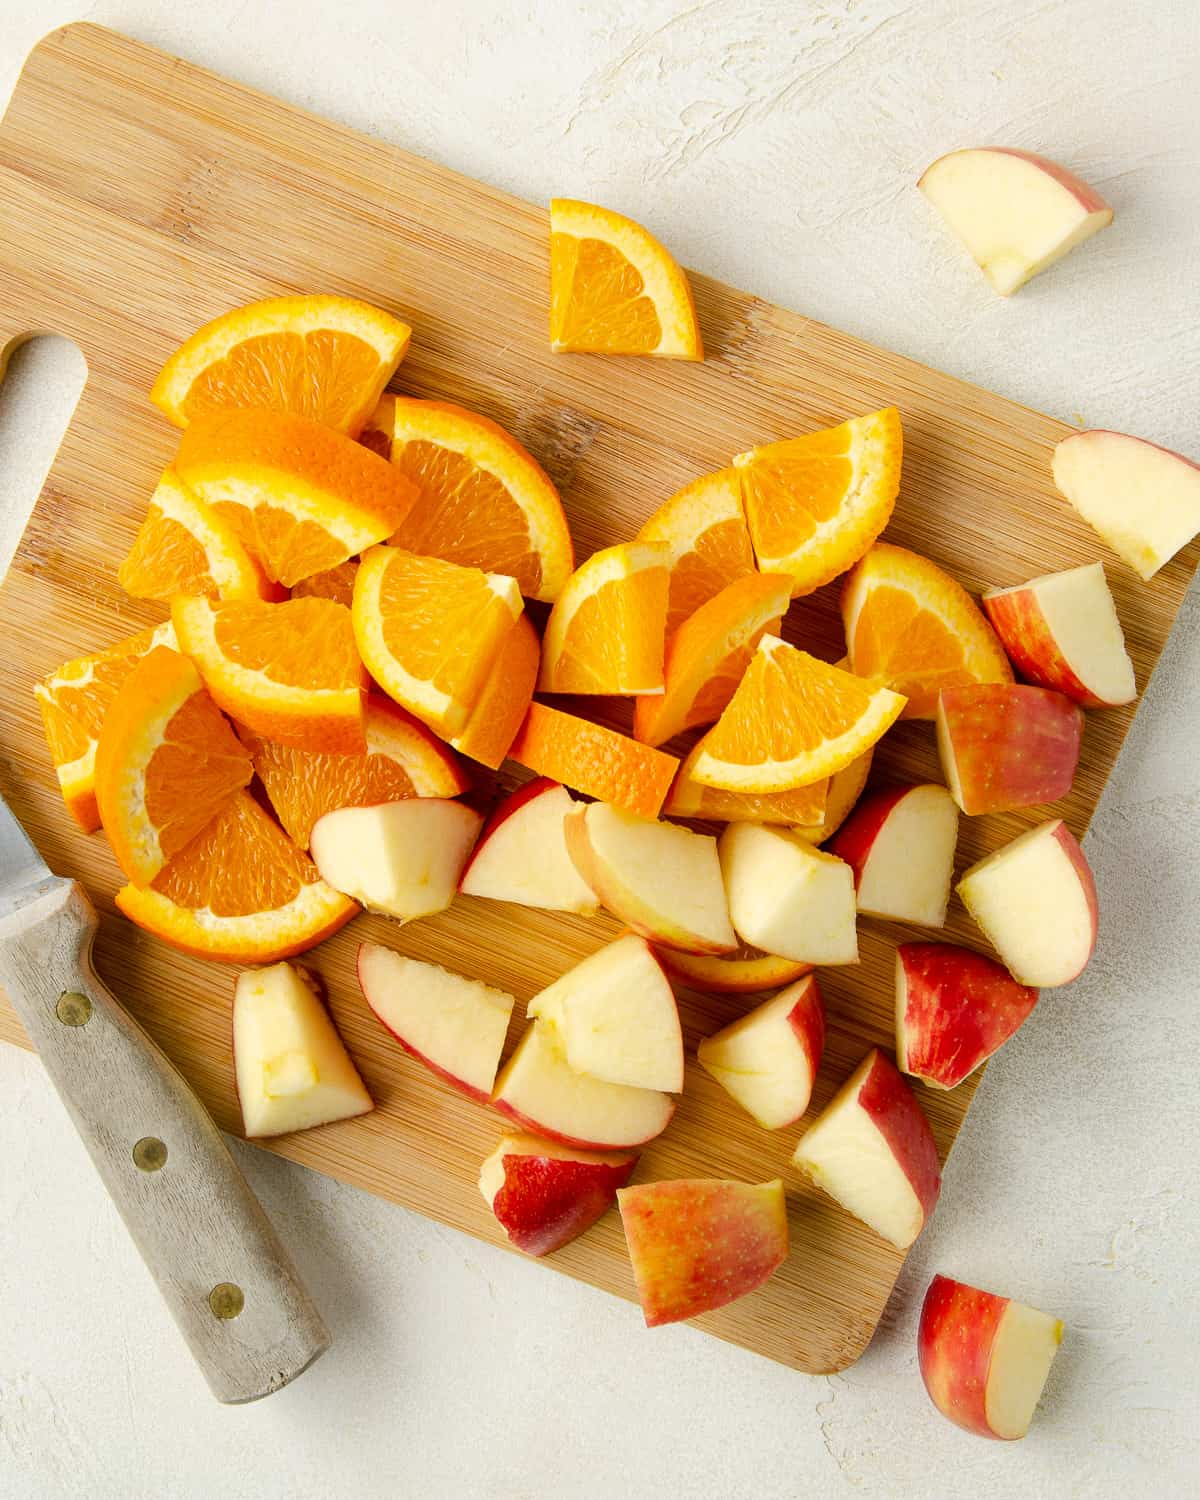 A cutting board of sliced apples and oranges.